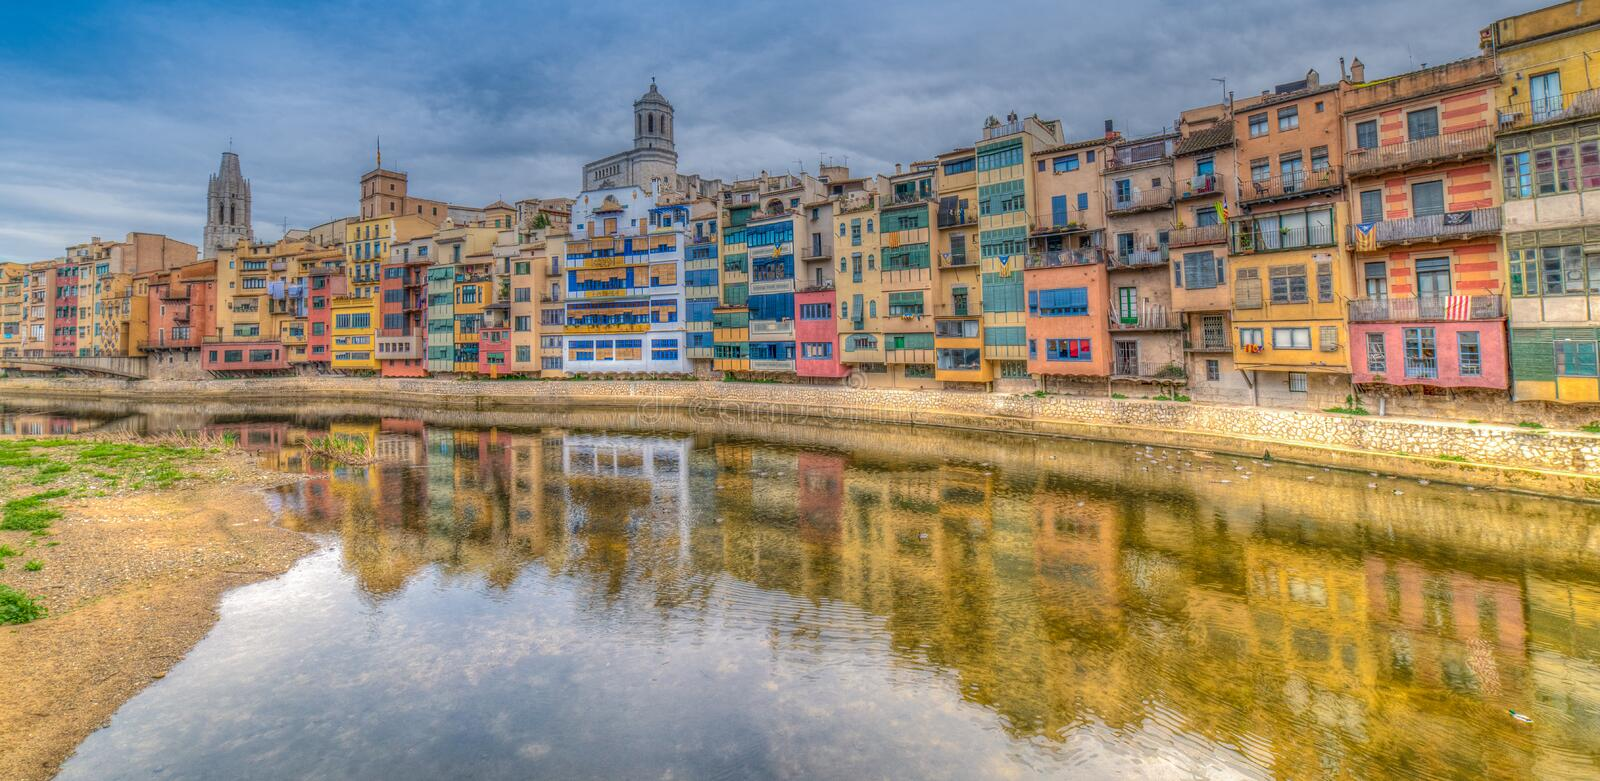 Colorful river-front houses of all shapes and sizes, painted in stock image